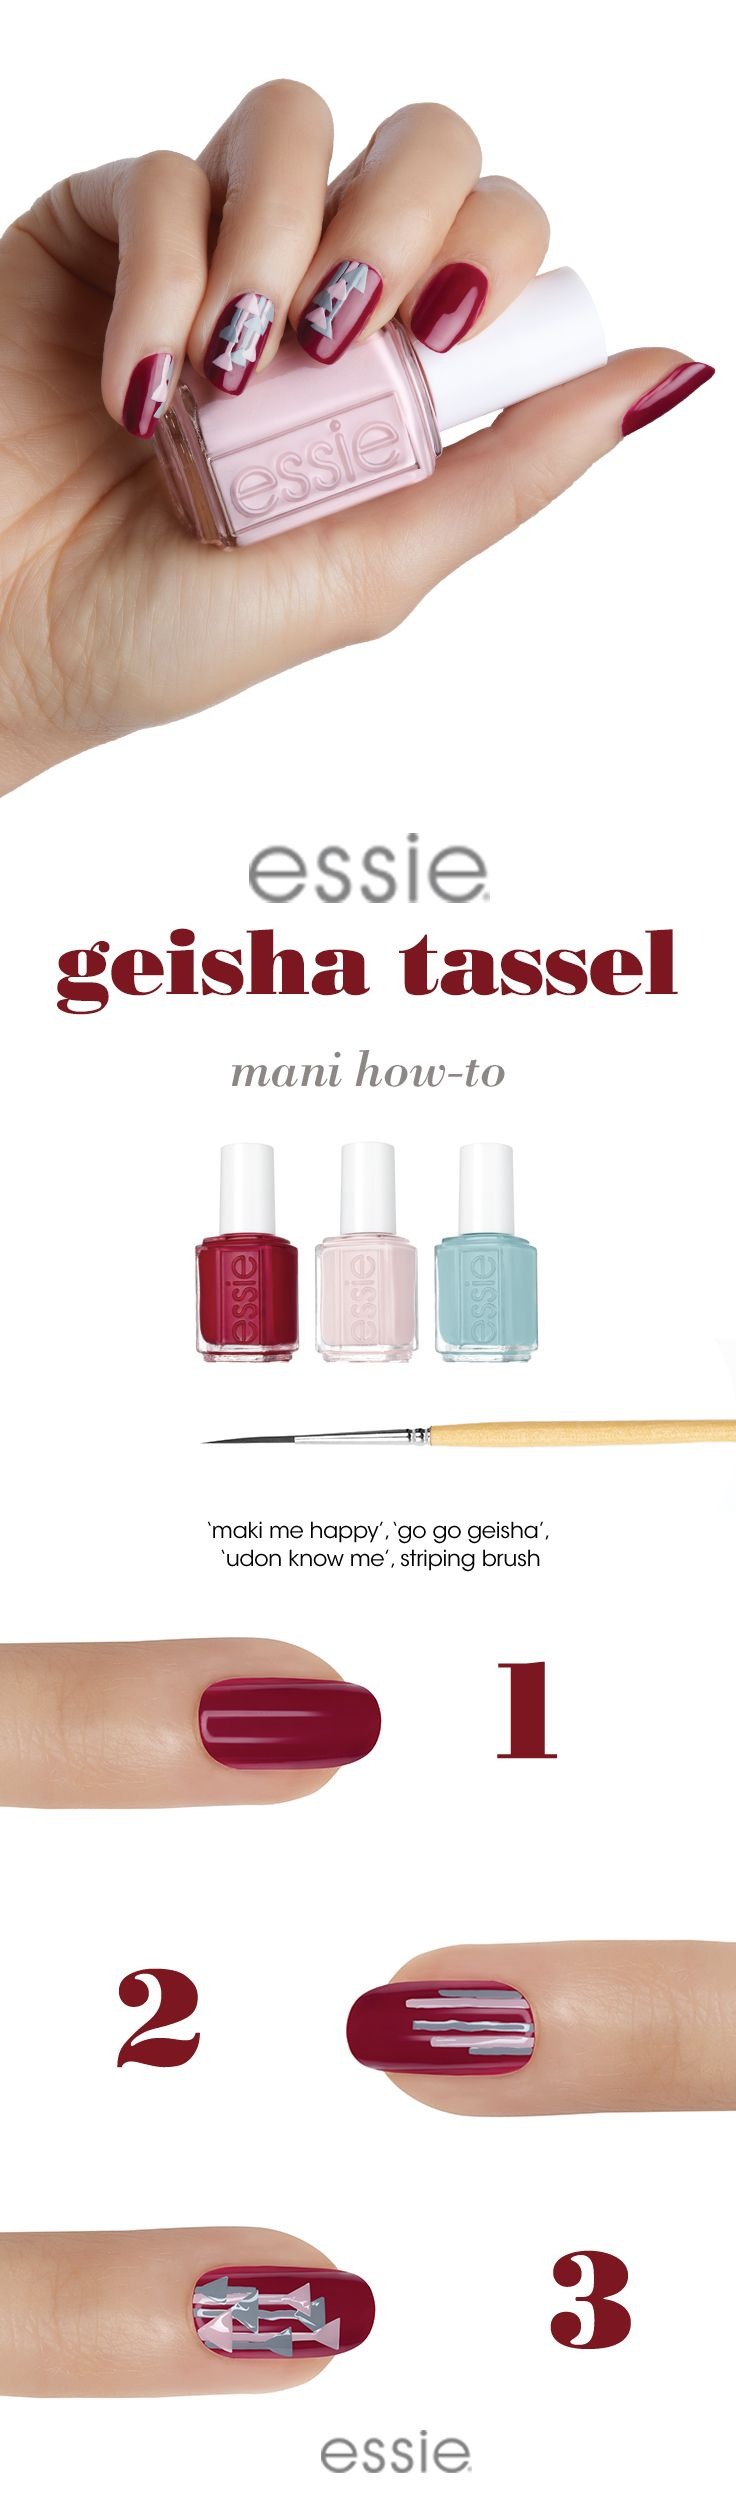 go geisha with our Japan travel-inspired fall shades and this simple, fun nail art design  step 1: After a thin layer of essie base coat, apply two coats of maki me happy. step 2:Using a striping brush, apply thin stripes of go go geisha and udon know me vertically down the nail. step 3: Use the striping brush to create 1-2 small triangle tassels hanging on each of the lines. step 4: Seal with essie top coat.